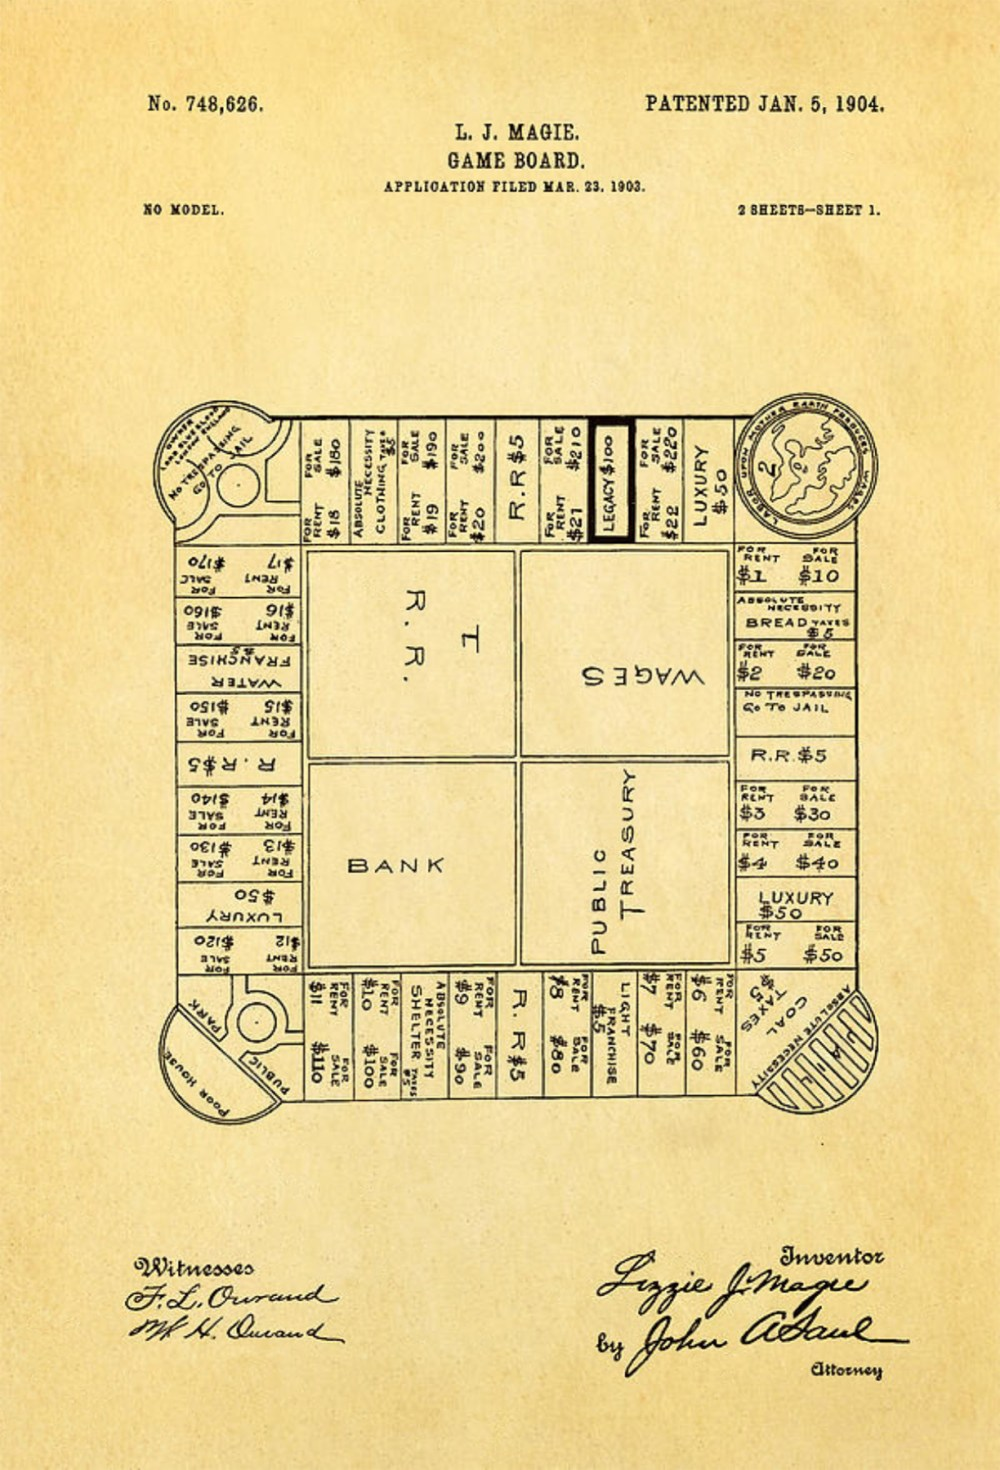 medium resolution of lizzie magie s landlord s game patent showing the board game dated january 5 1904